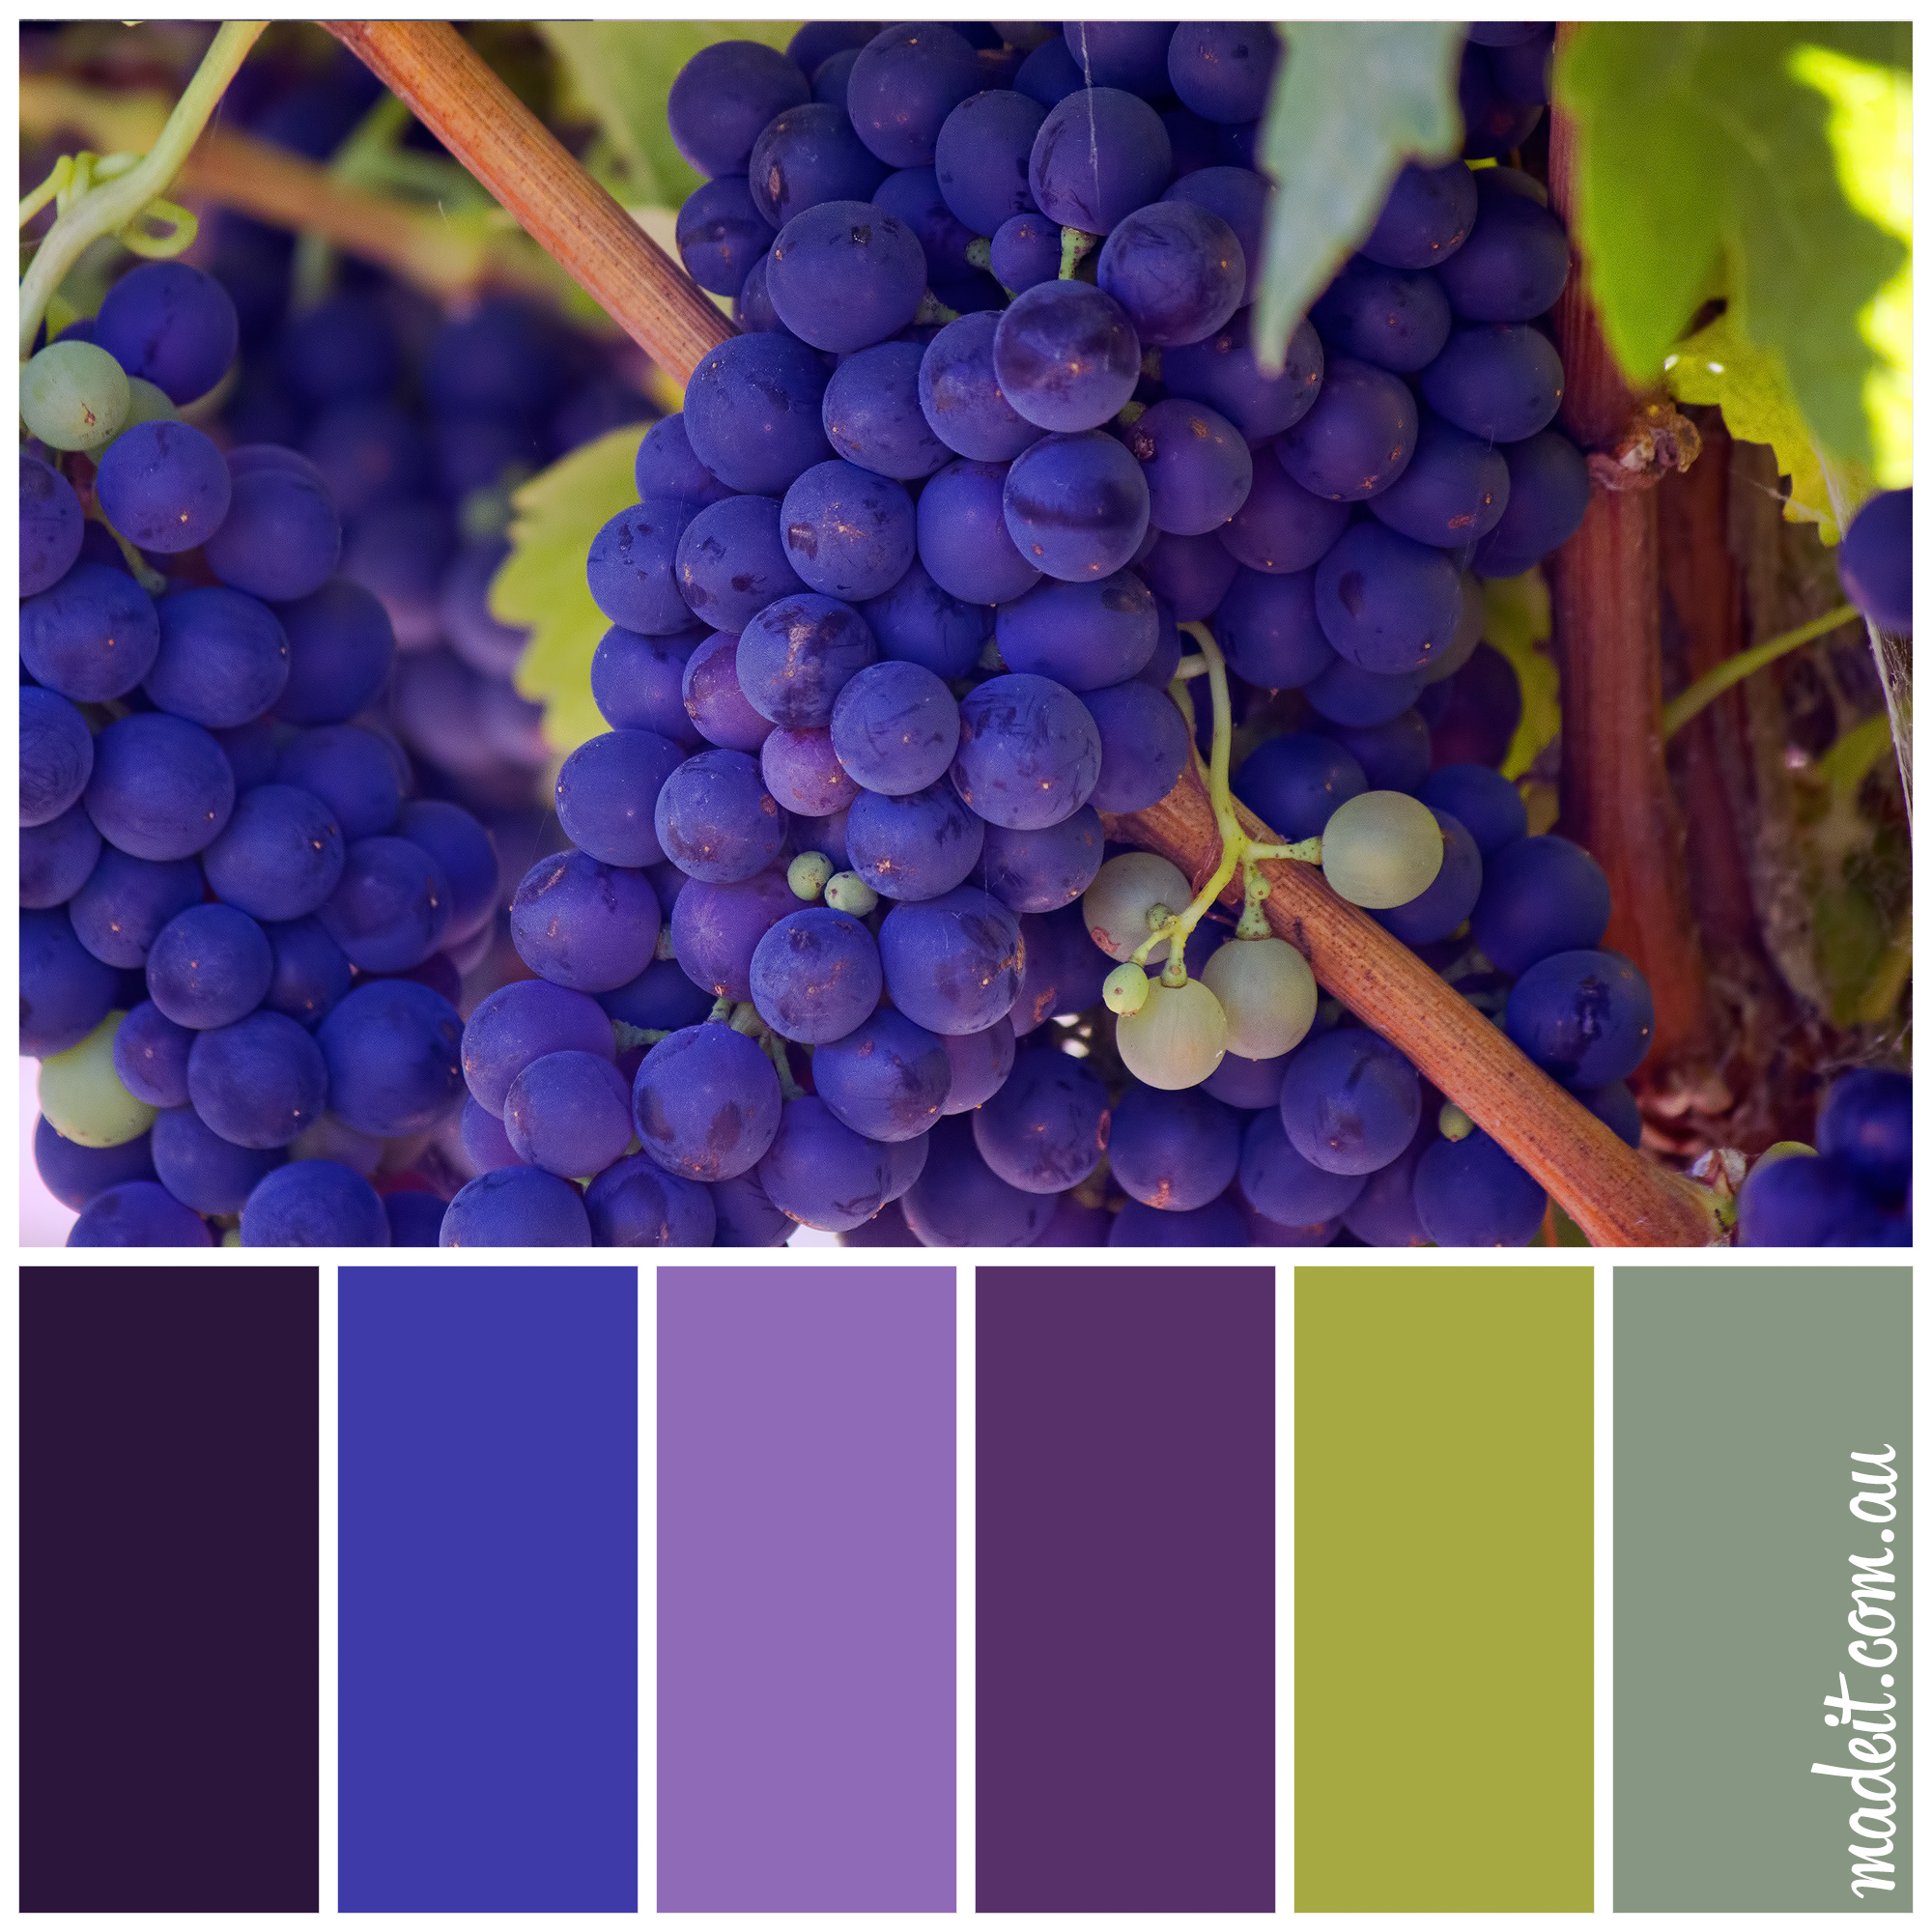 Colour Inspiration: deep purple and lush green foliage of ripe grapes on the vine